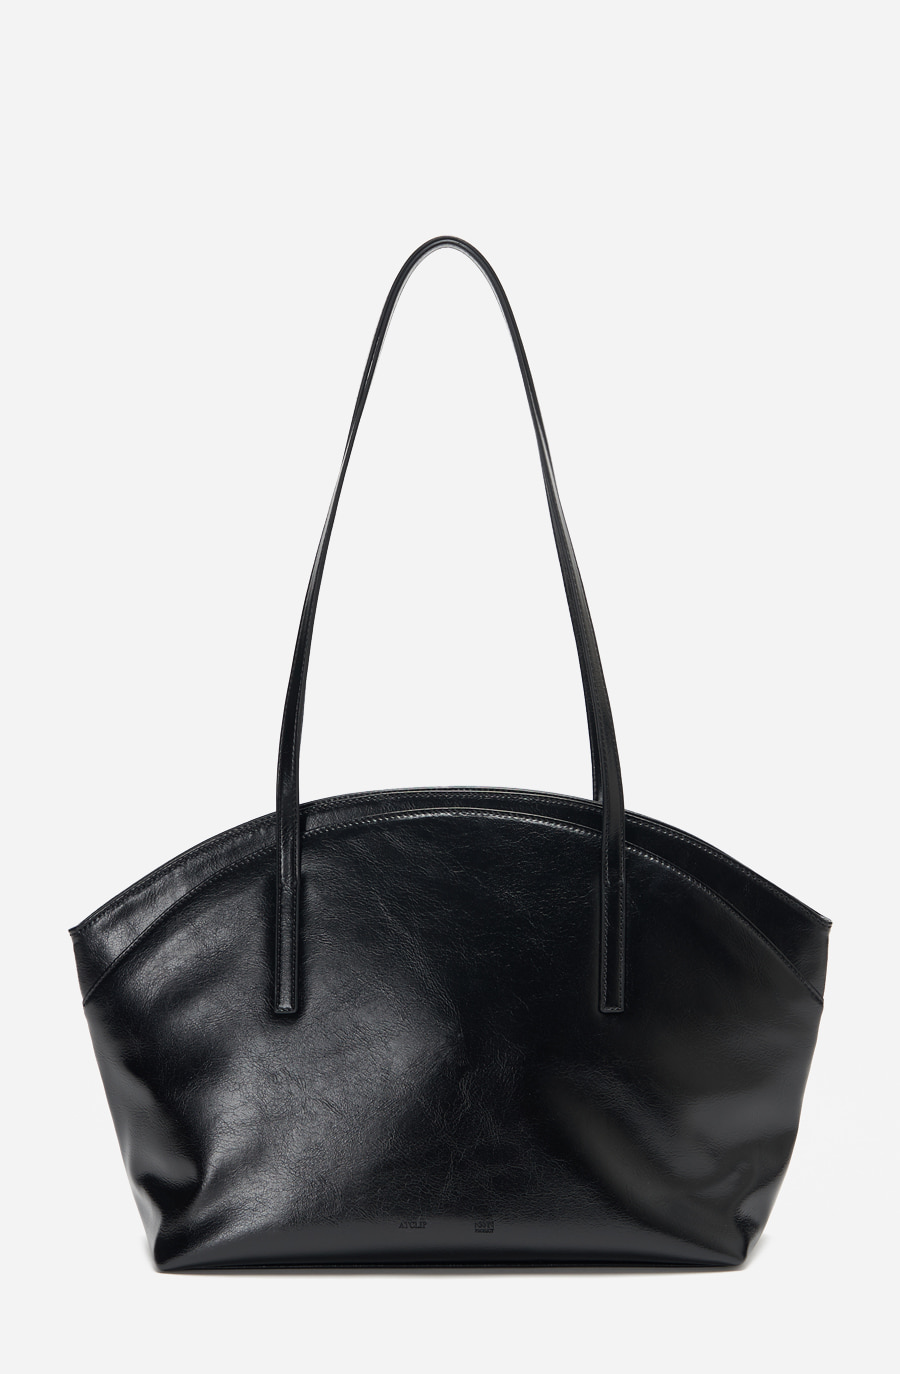 CLAM BAG (black)